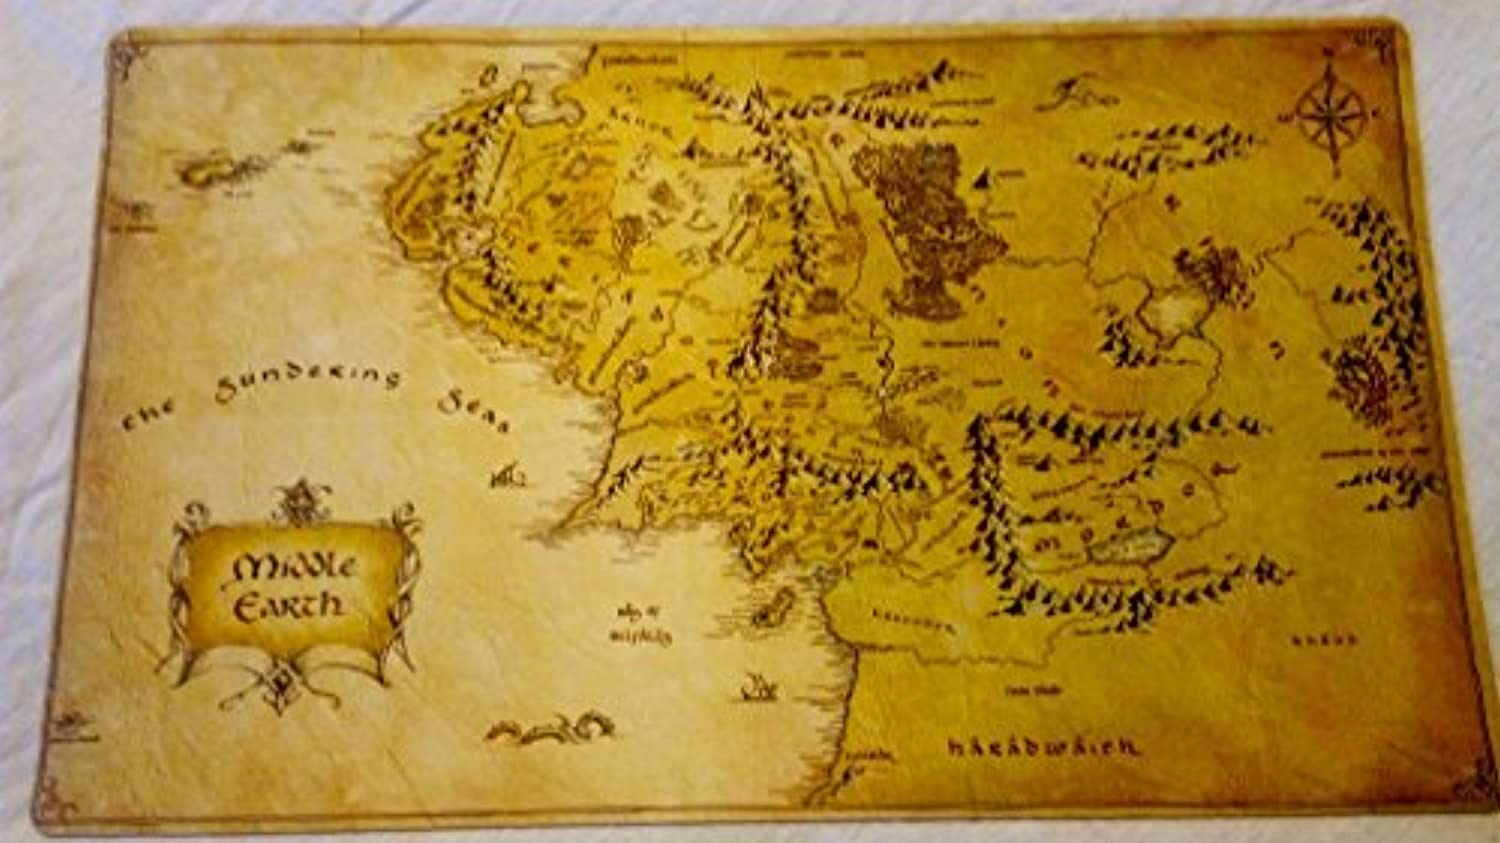 Lord of the Rings Middle Earth Map TCG playmat, gamemat 24 wide 14 tall for trading card game smooth cloth surface rubber base by Masters of trade